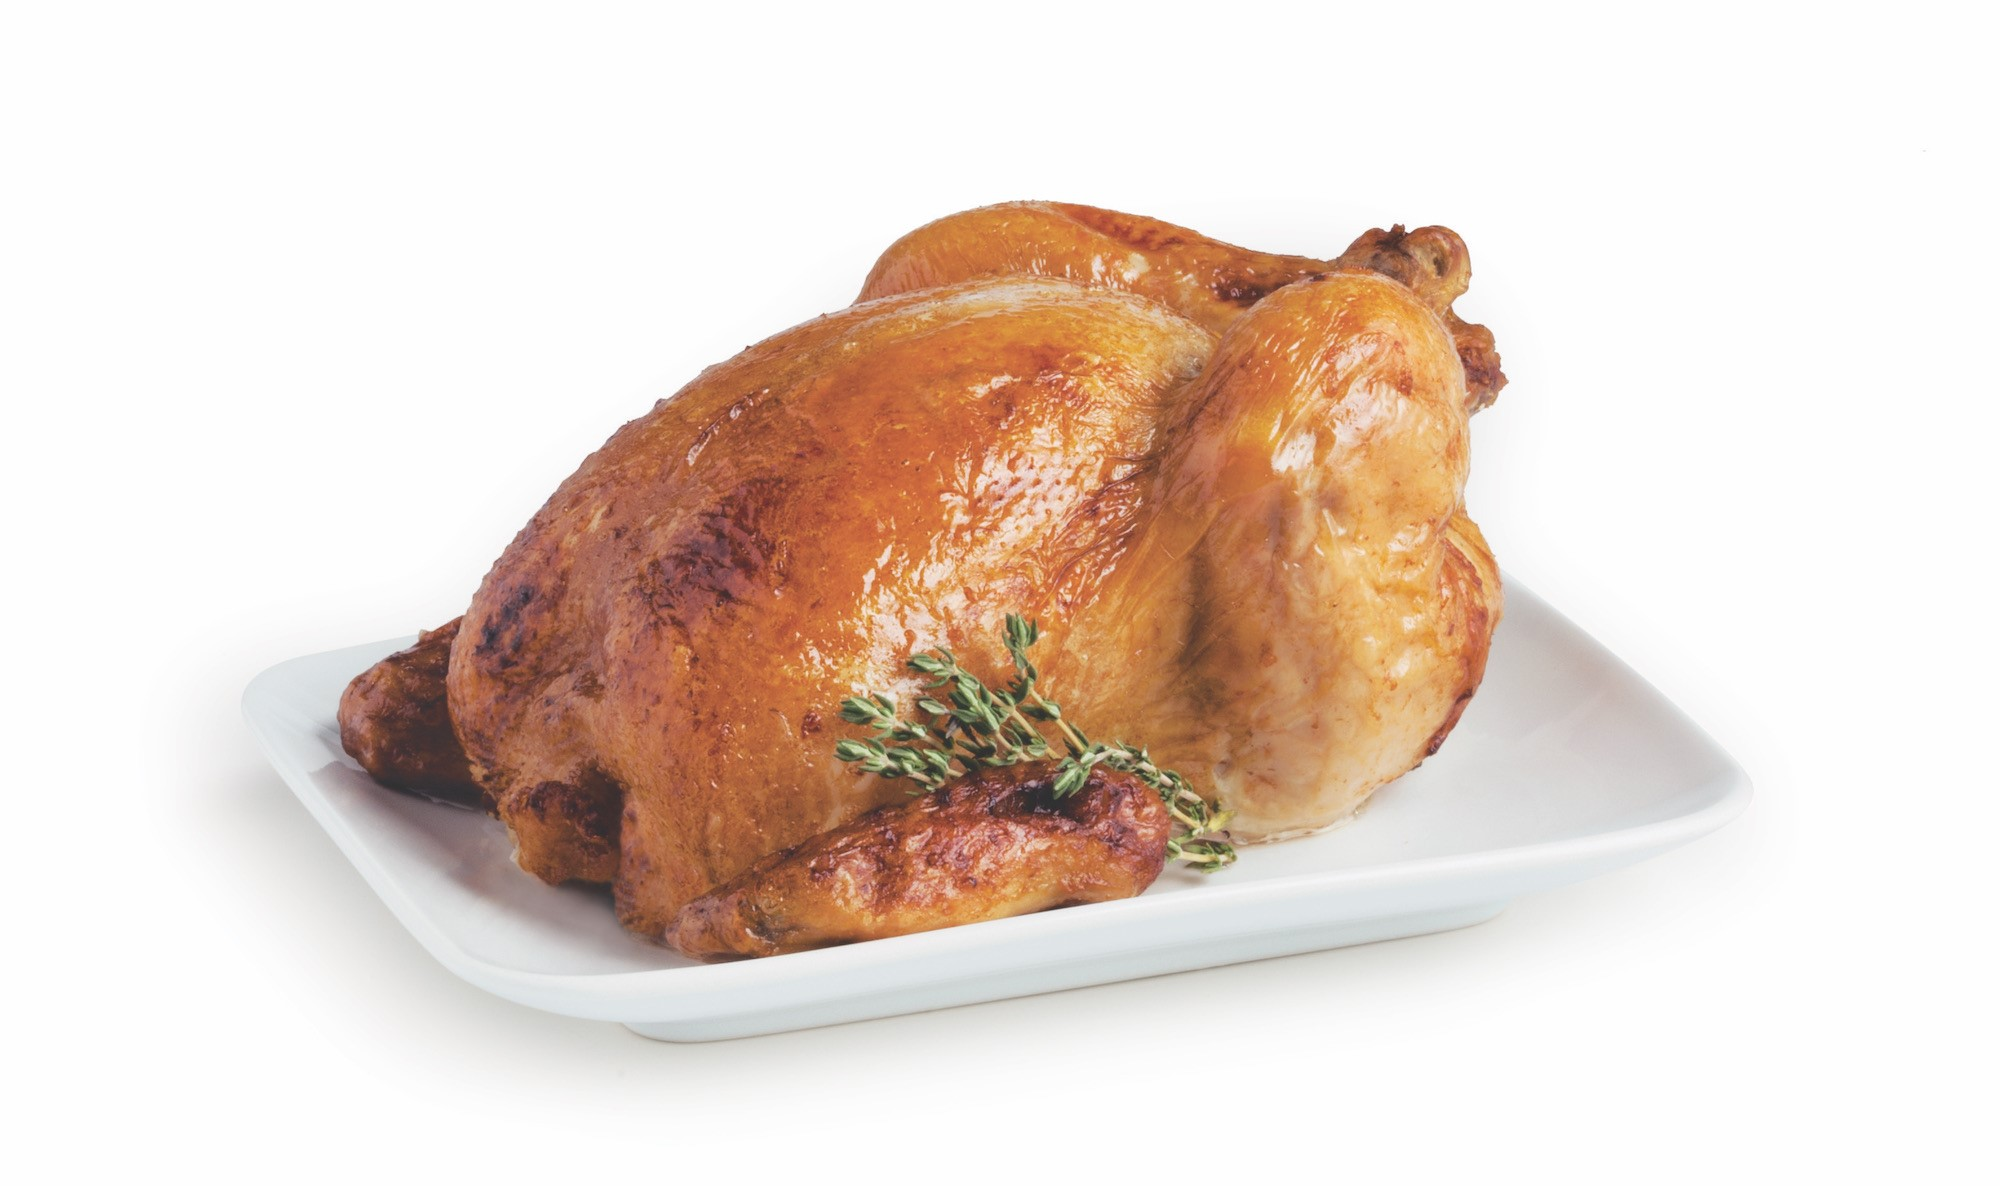 Rotisserie Chicken with Thyme Sprigs